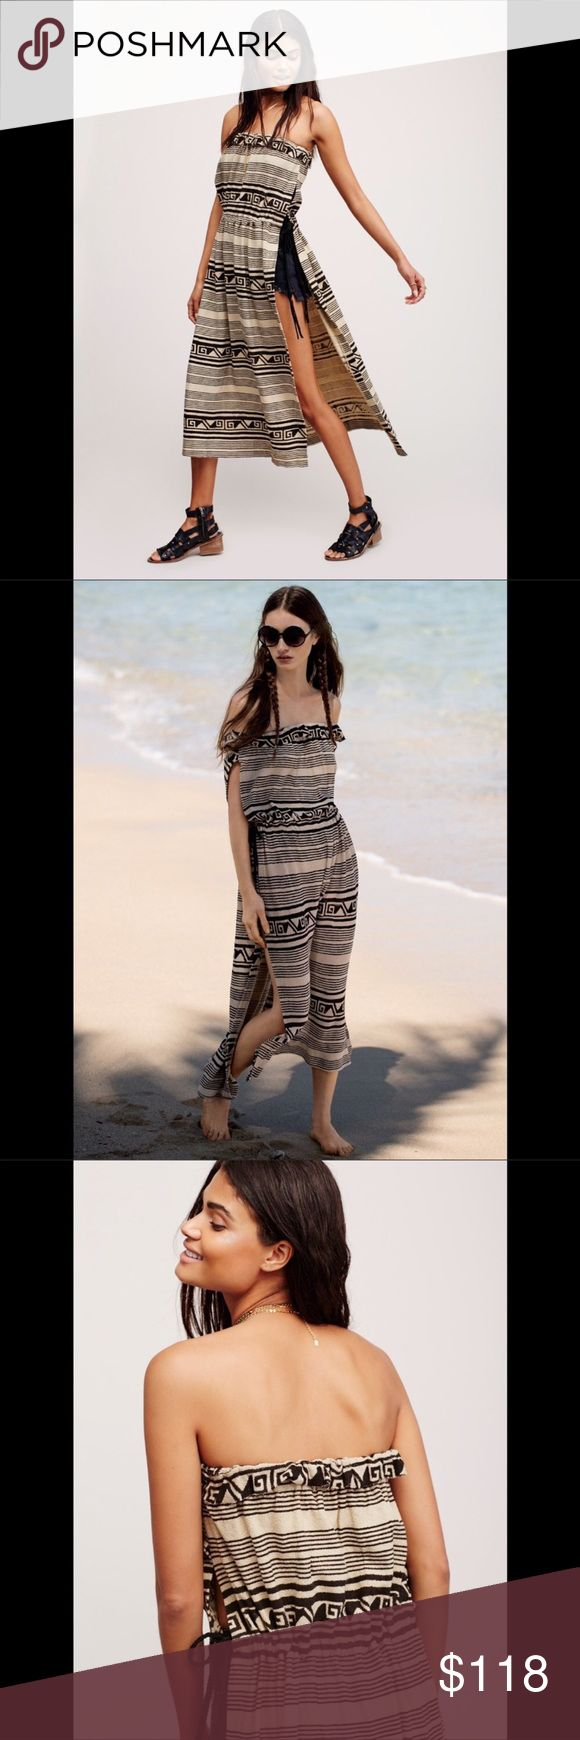 FREE PEOPLE maxi side slit Tribal inspired tube tunic in a maxi length featuring exaggerated side vents. Adjustable waistband with braided suede ties and an elastic band at the bust for an effortless fit. 581167  Retail: $118 Size: L (other sizes listed)  ❤I have over 300 new with tag Free People & More items for sale! I love to offer bundle discounts!  ❤No trades. I no longer discuss pricing in comments. Please use offer button to submit offer!  Free People Dresses Maxi